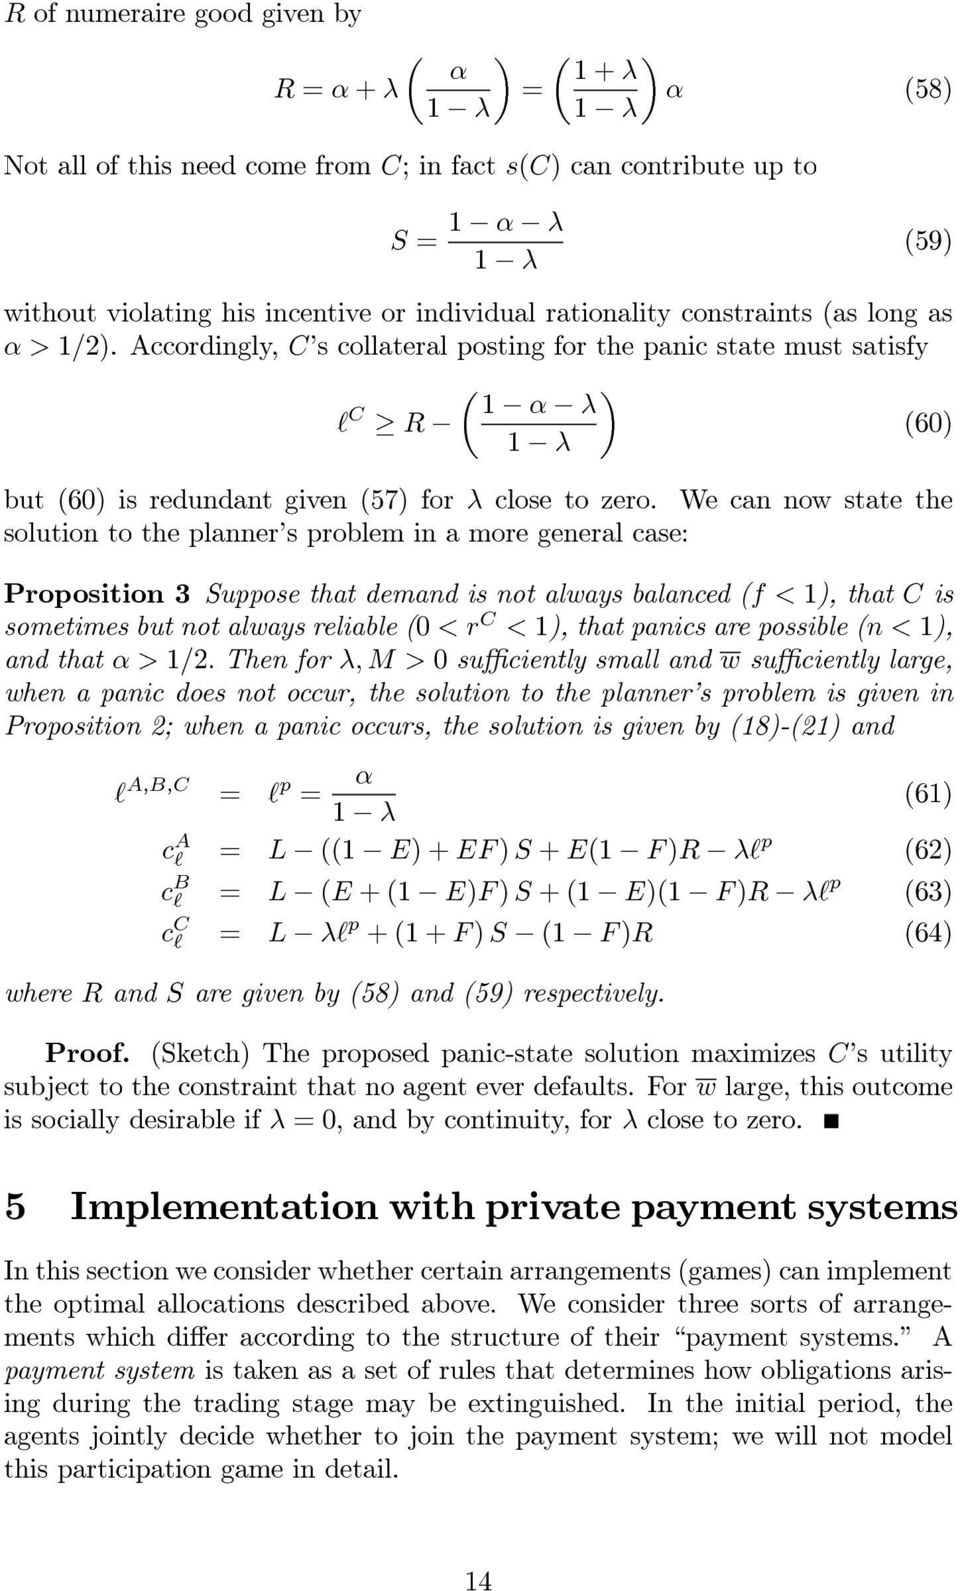 We can now state the solution to the planner s problem in a more general case: Proposition 3 Suppose that demand is not always balanced (f < 1), that C is sometimes but not always reliable (0 <r C <